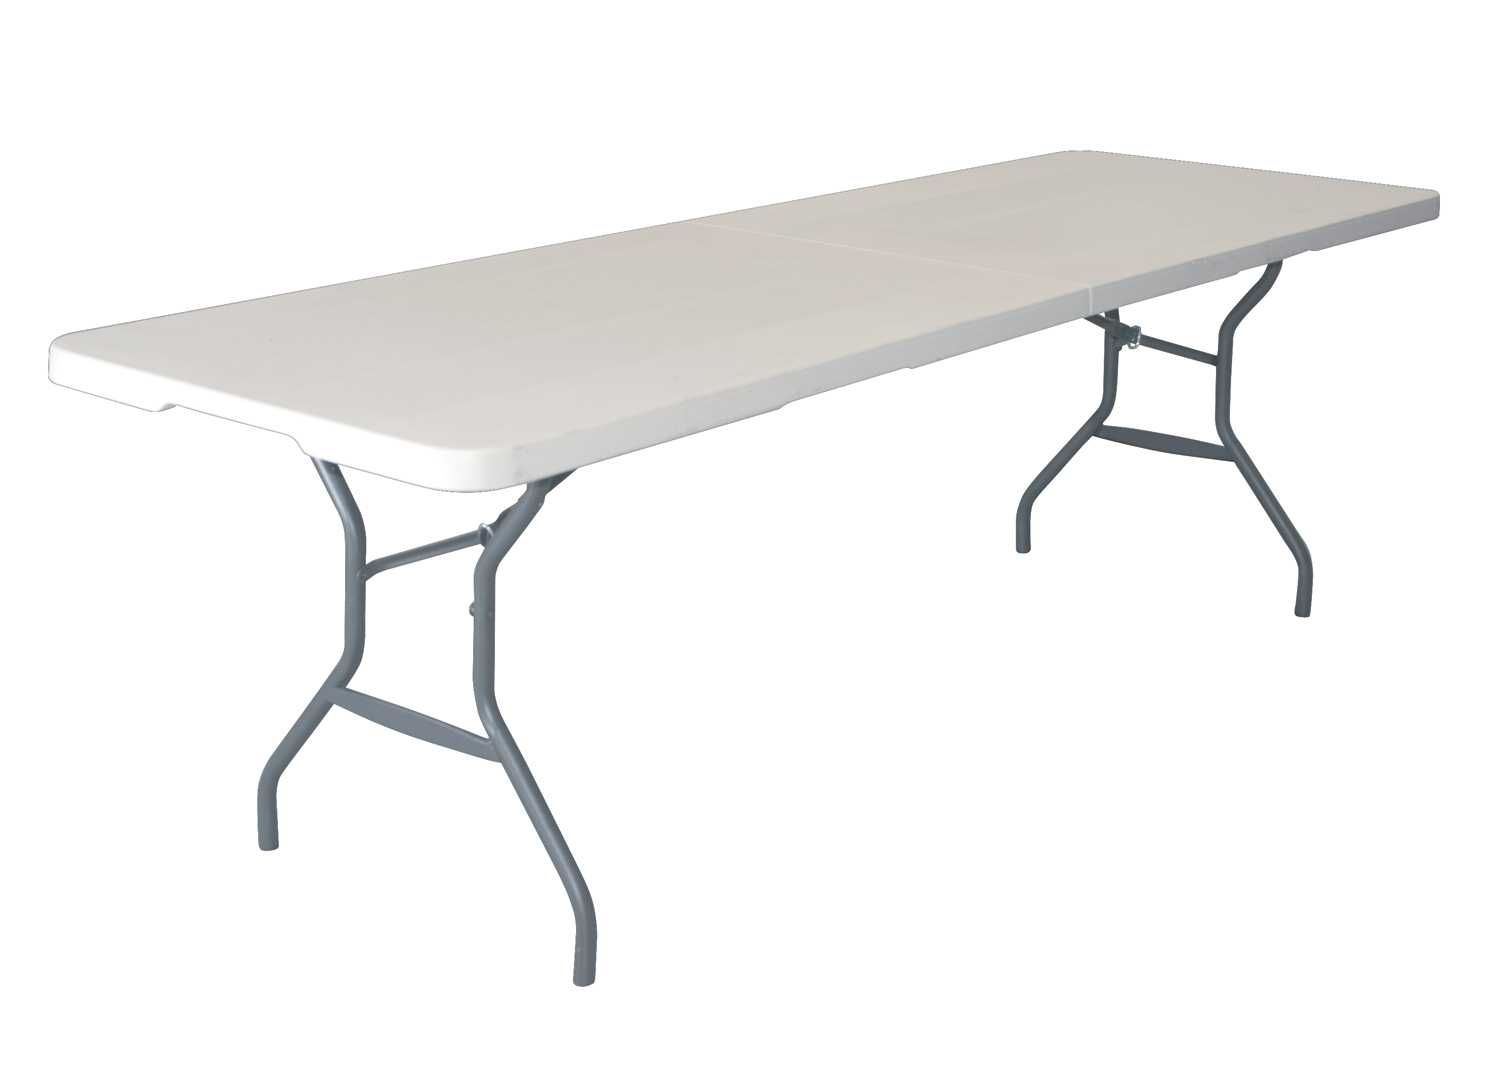 Pin By Competitive Edge Products Inc On Lifetime Eight Foot Fold In Half Tables Table Lifetime Tables Folding Table